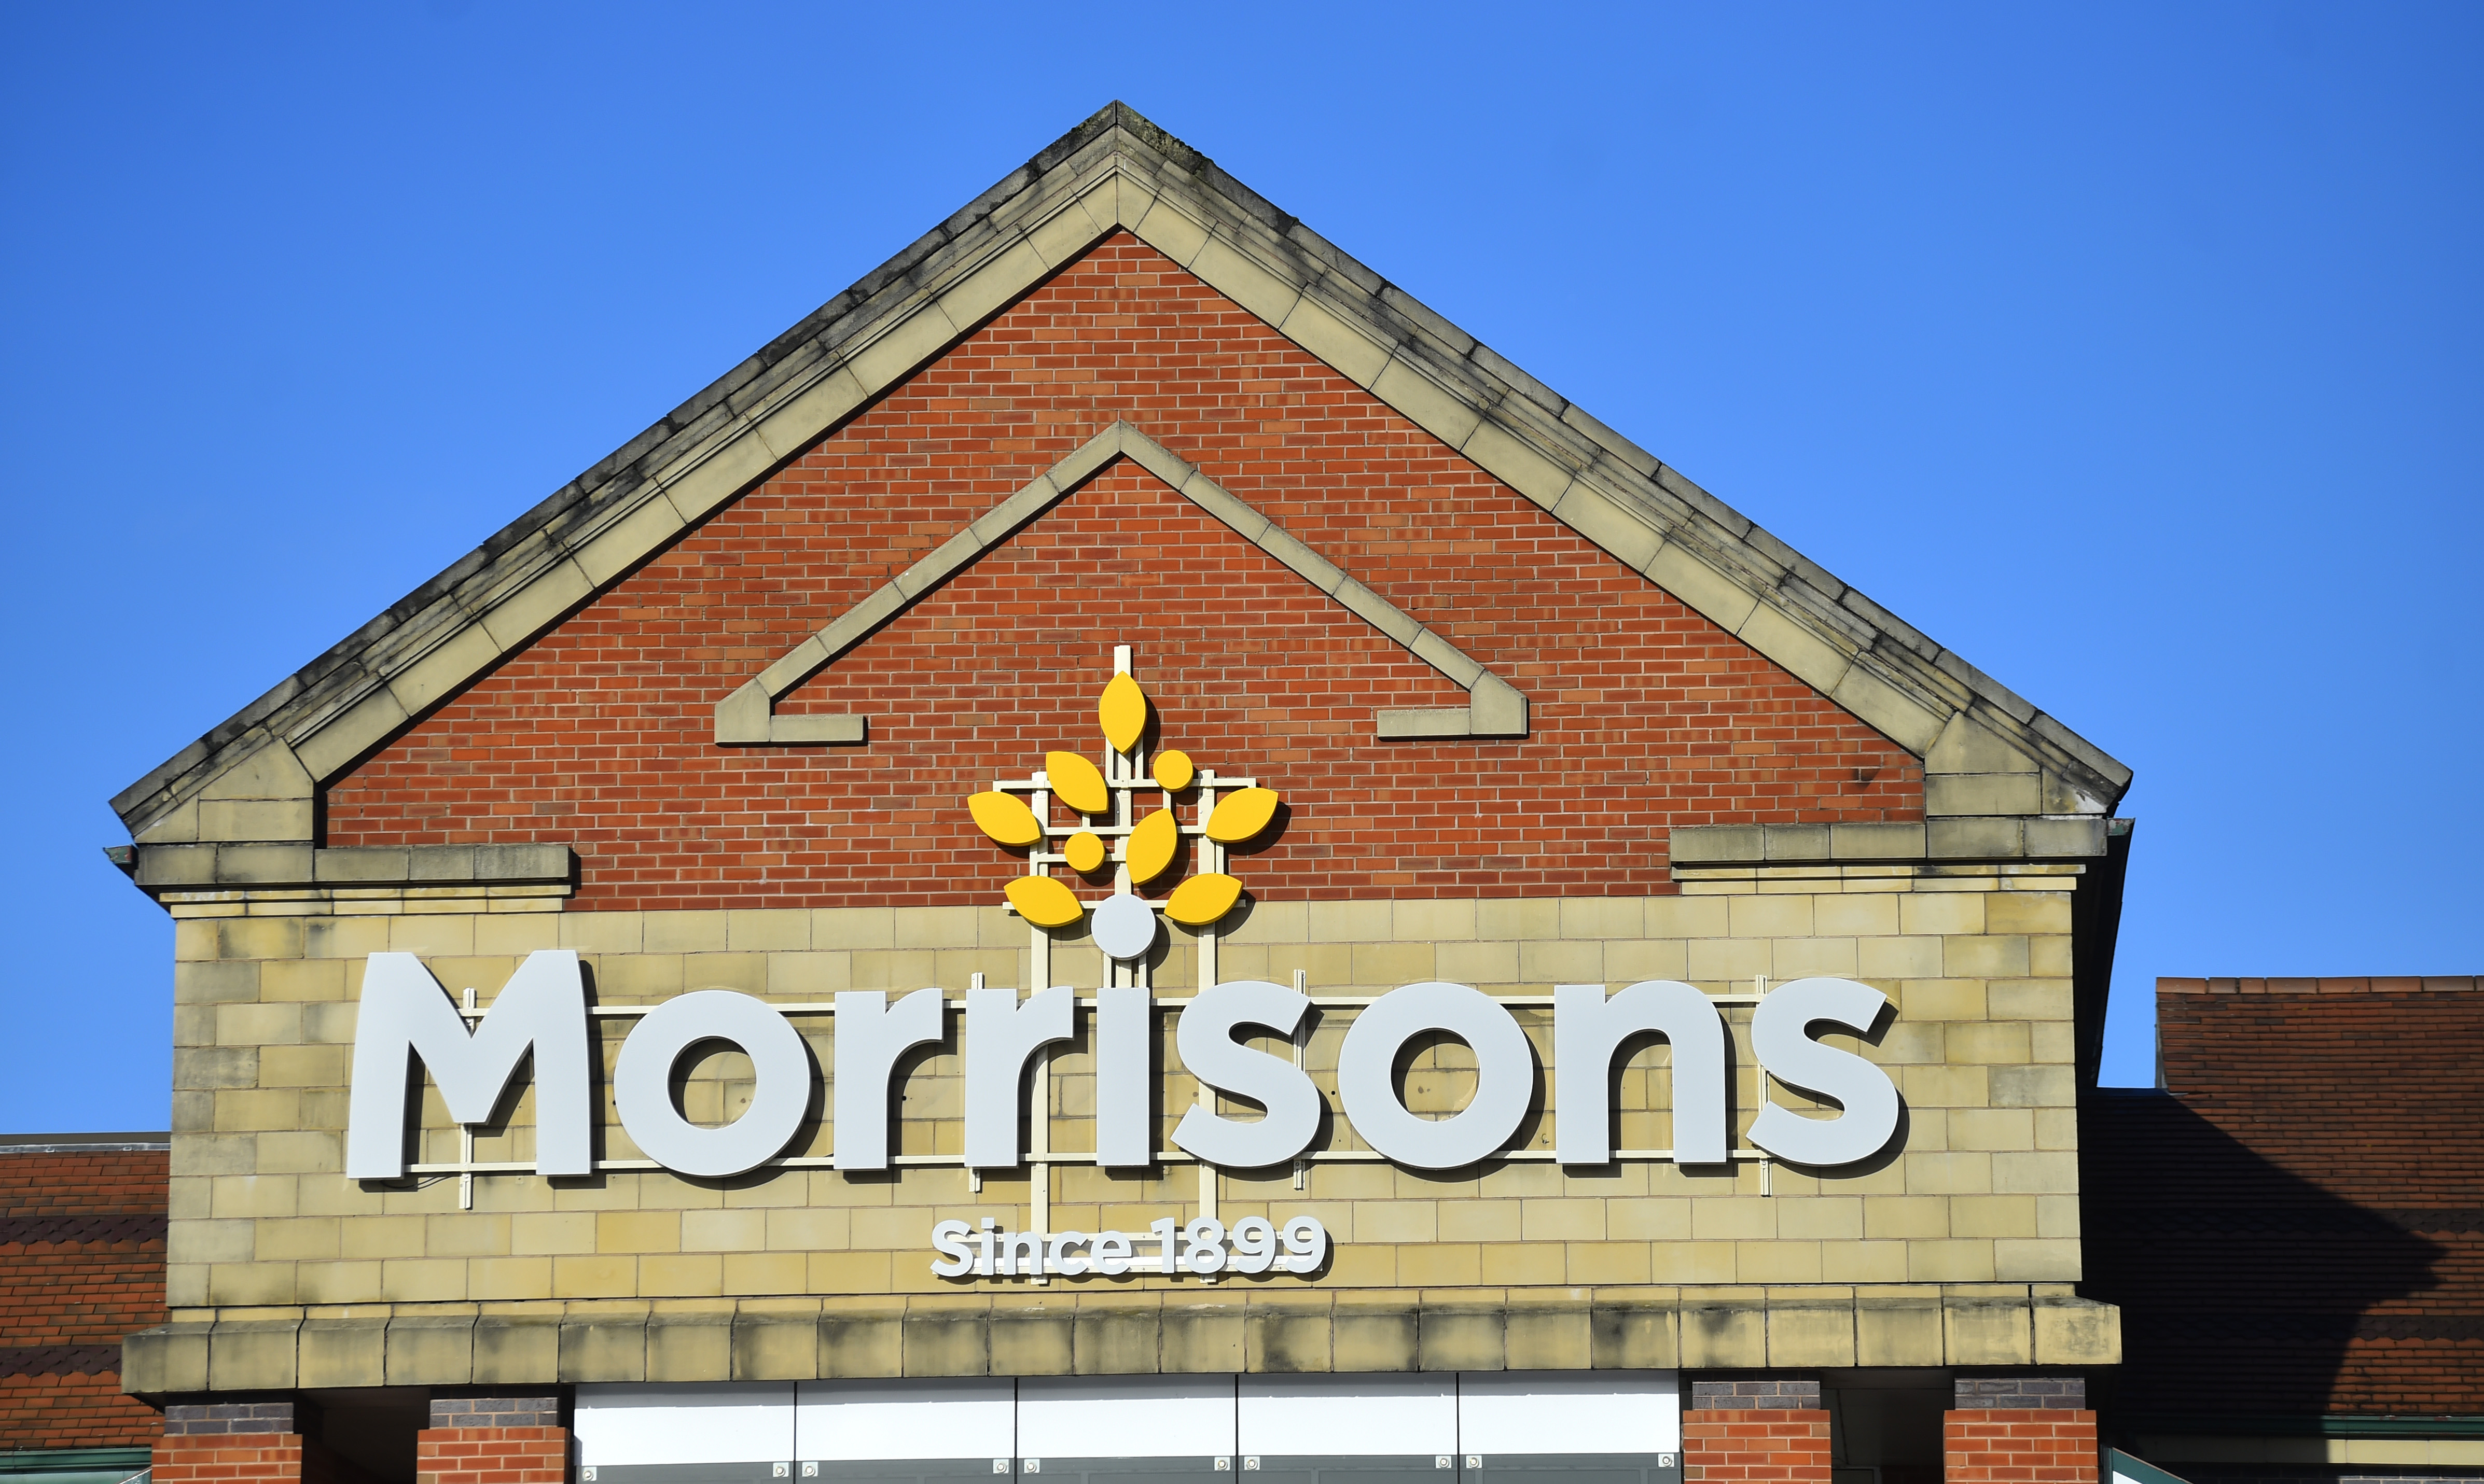 Morrisons extended its opening hours in the run-up to Christmas